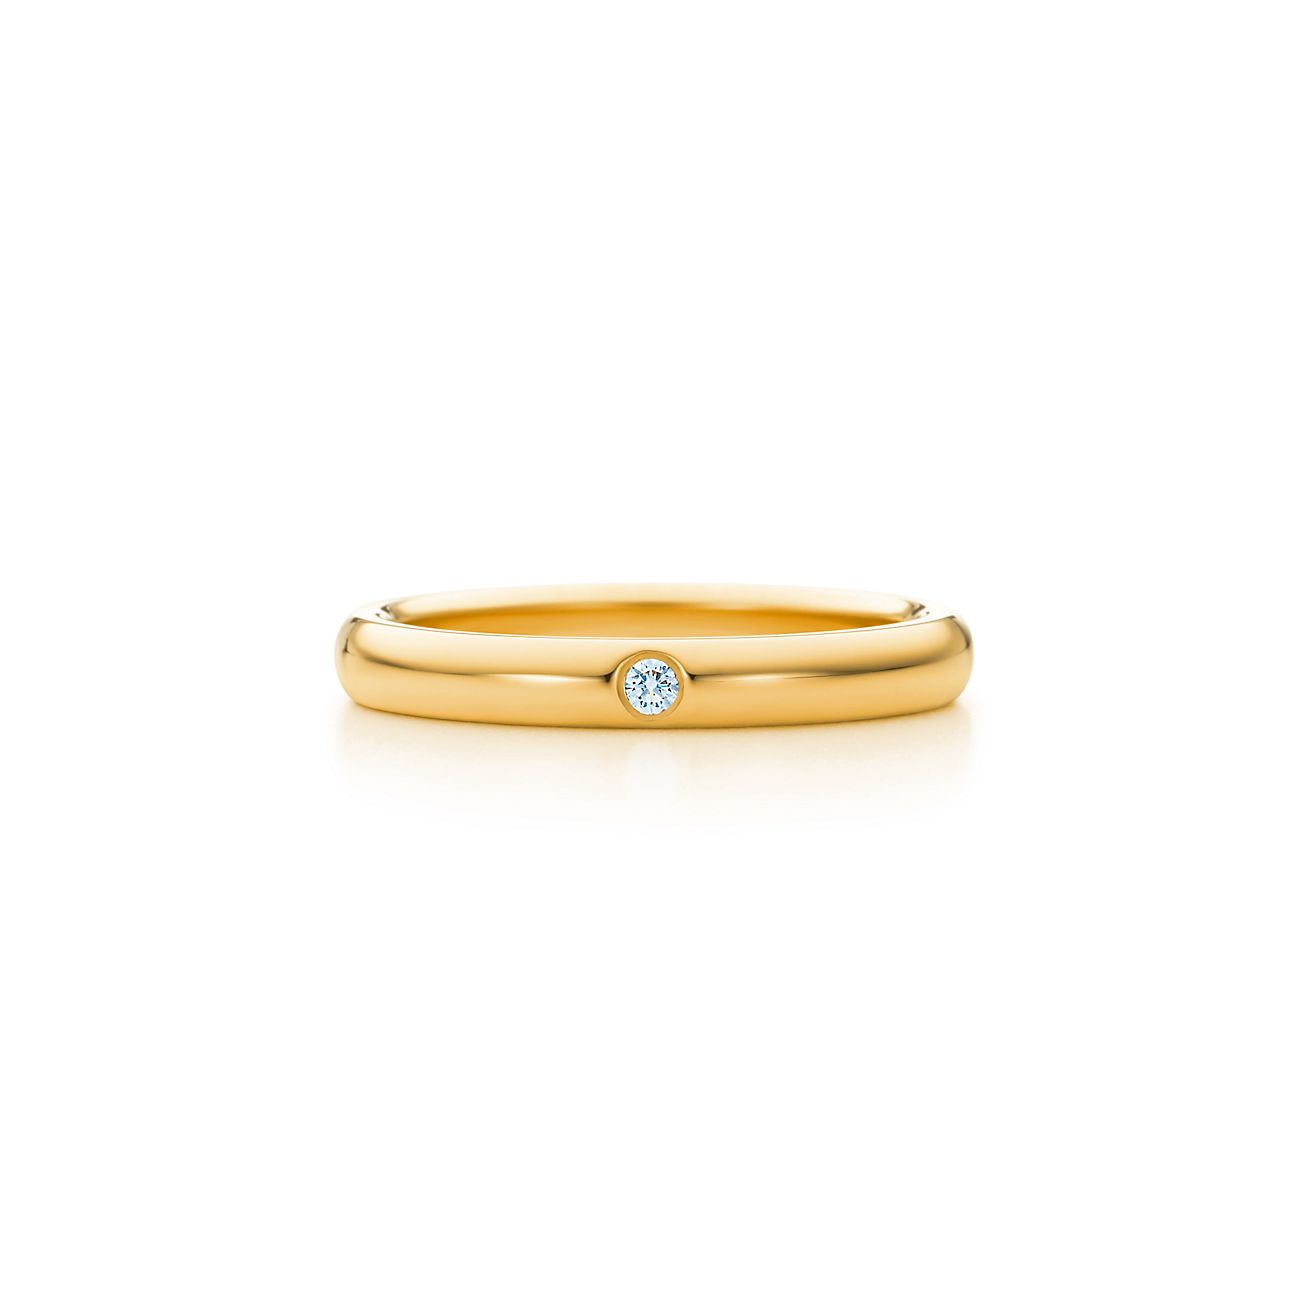 Elsa Peretti wedding band ring with diamonds in 18k gold - Size 4 1/2 Tiffany & Co.